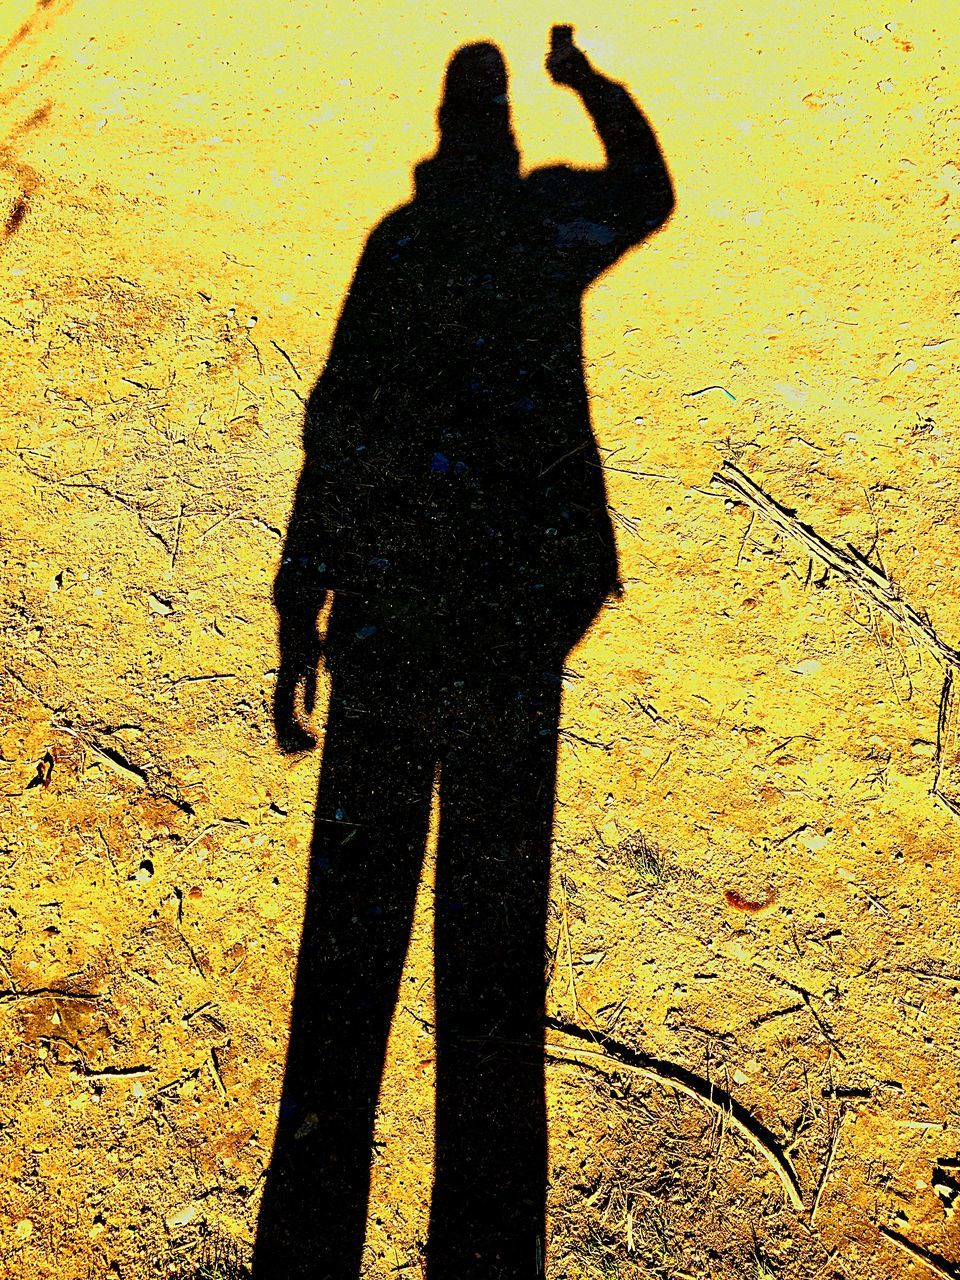 shadow, focus on shadow, real people, silhouette, sunlight, lifestyles, outdoors, leisure activity, photographing, men, one person, day, standing, selfie, people